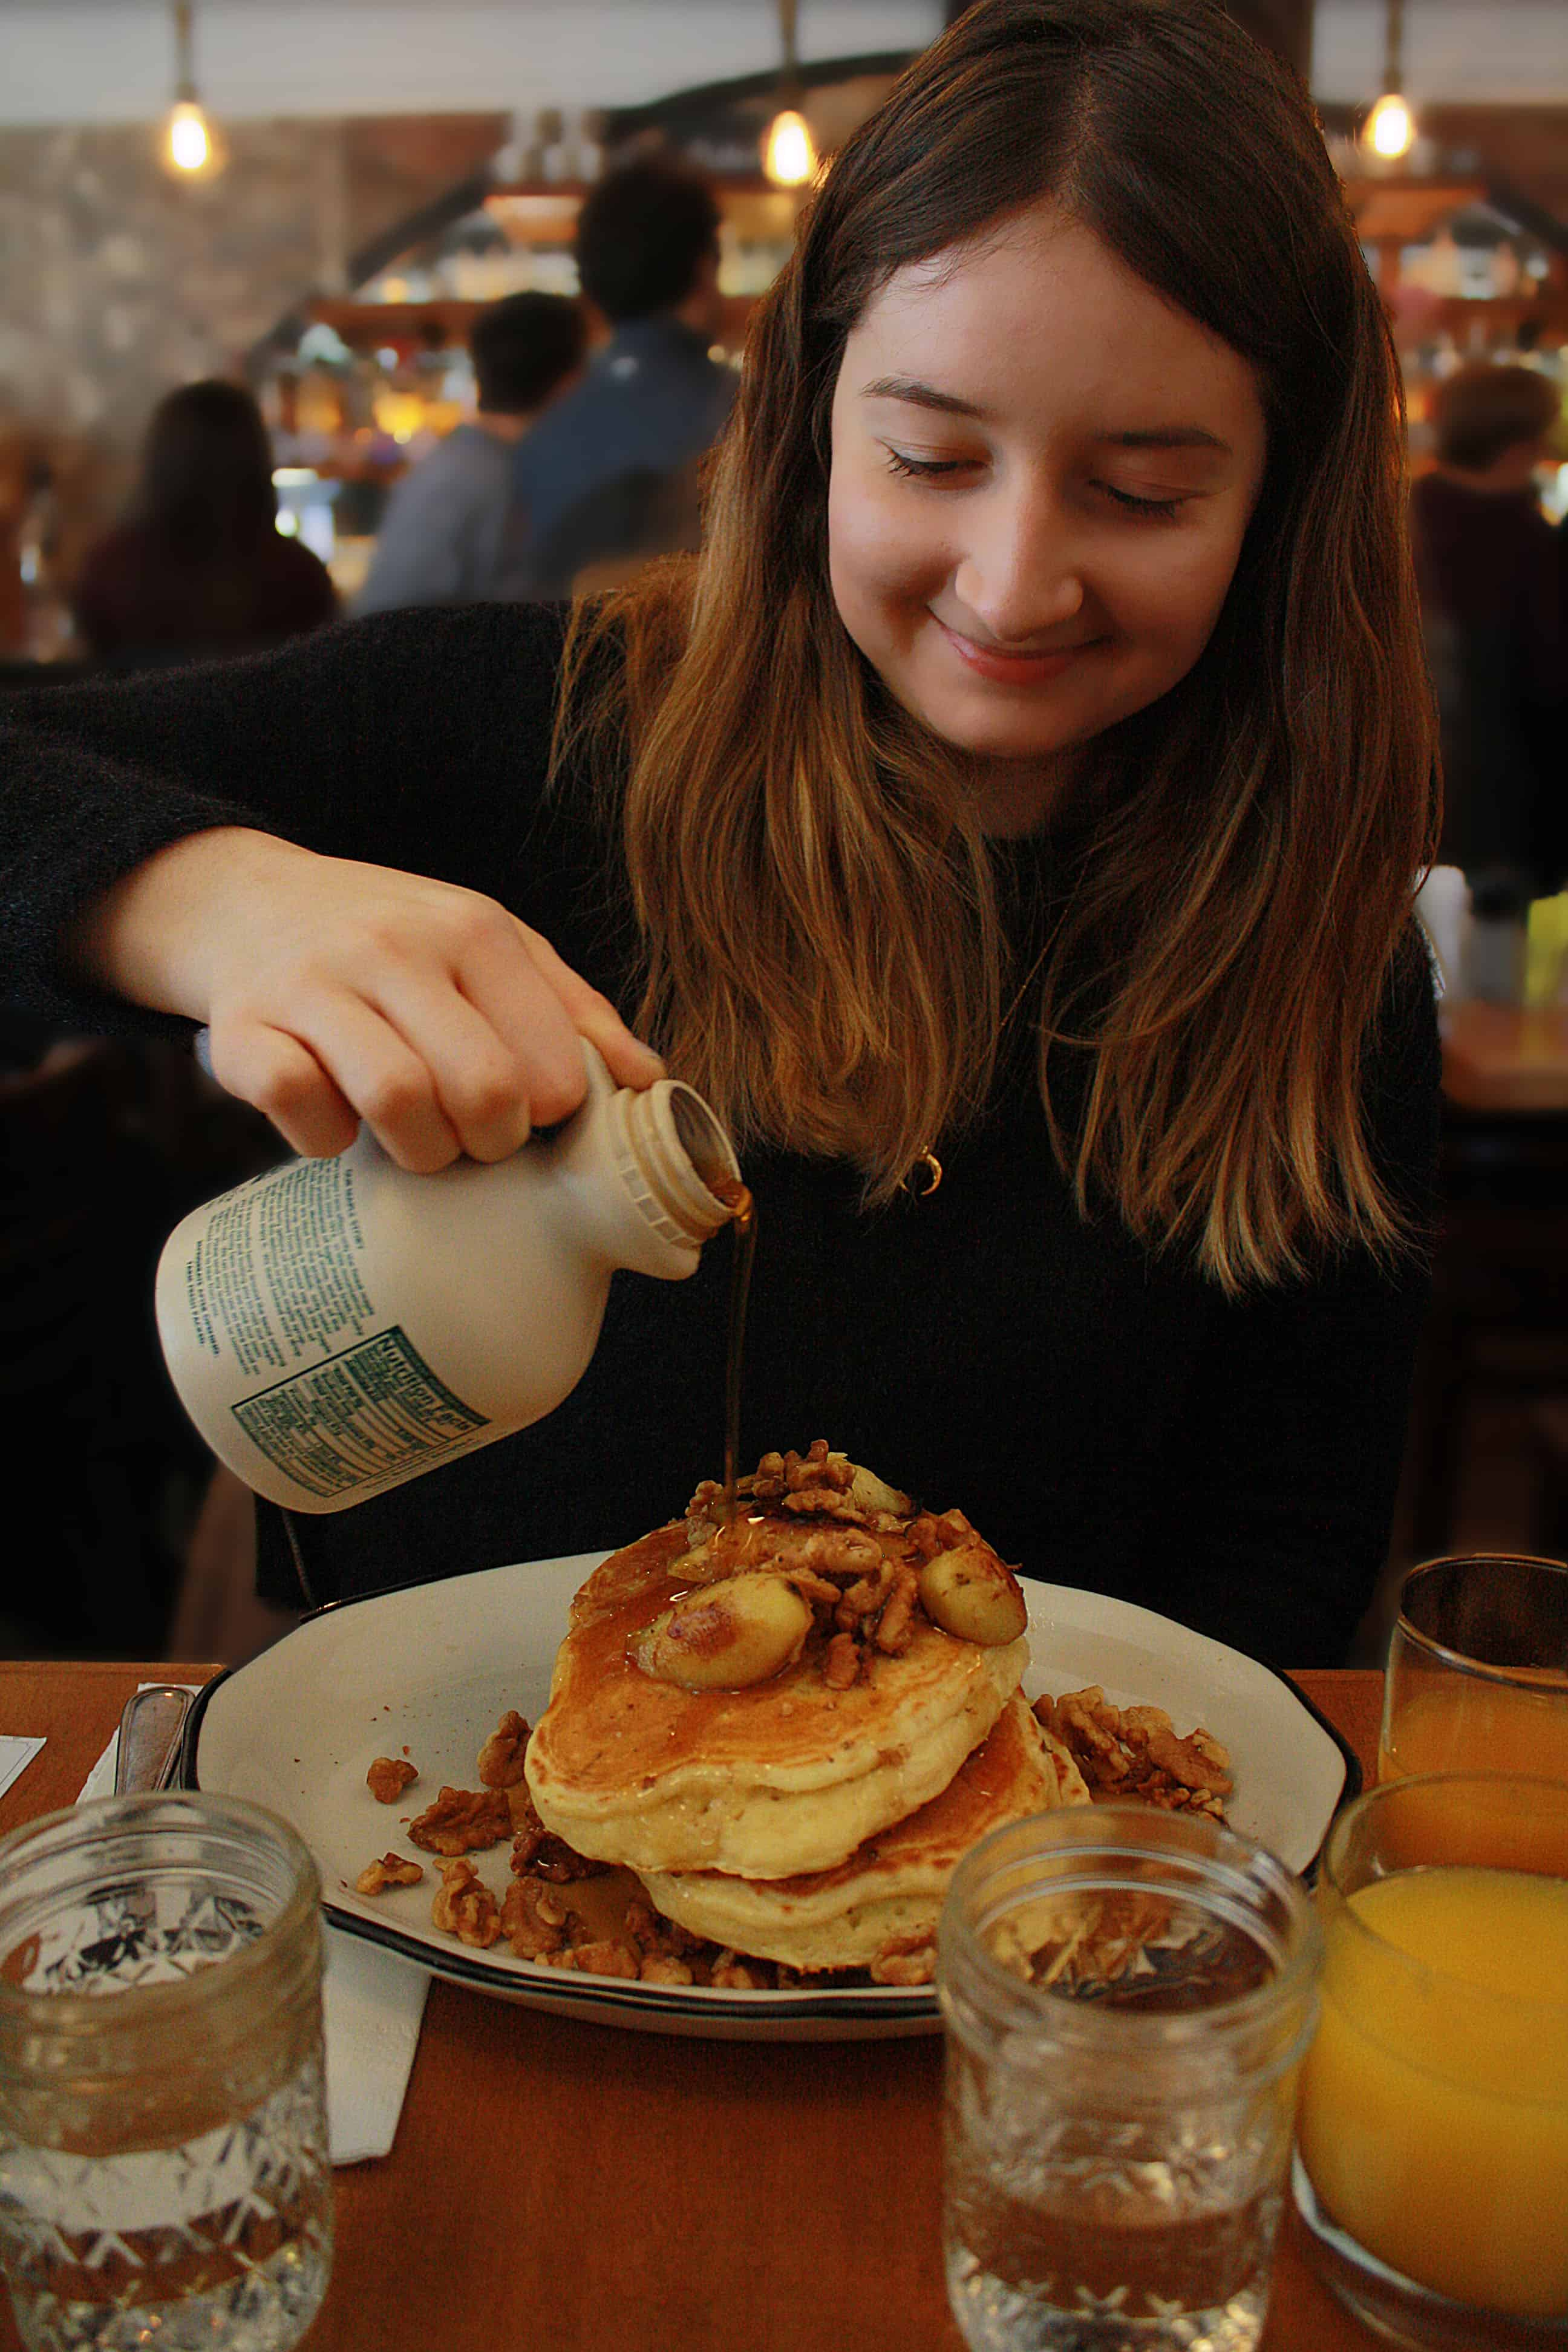 pouring maple syrup on pancakes at Bubby's, NYC